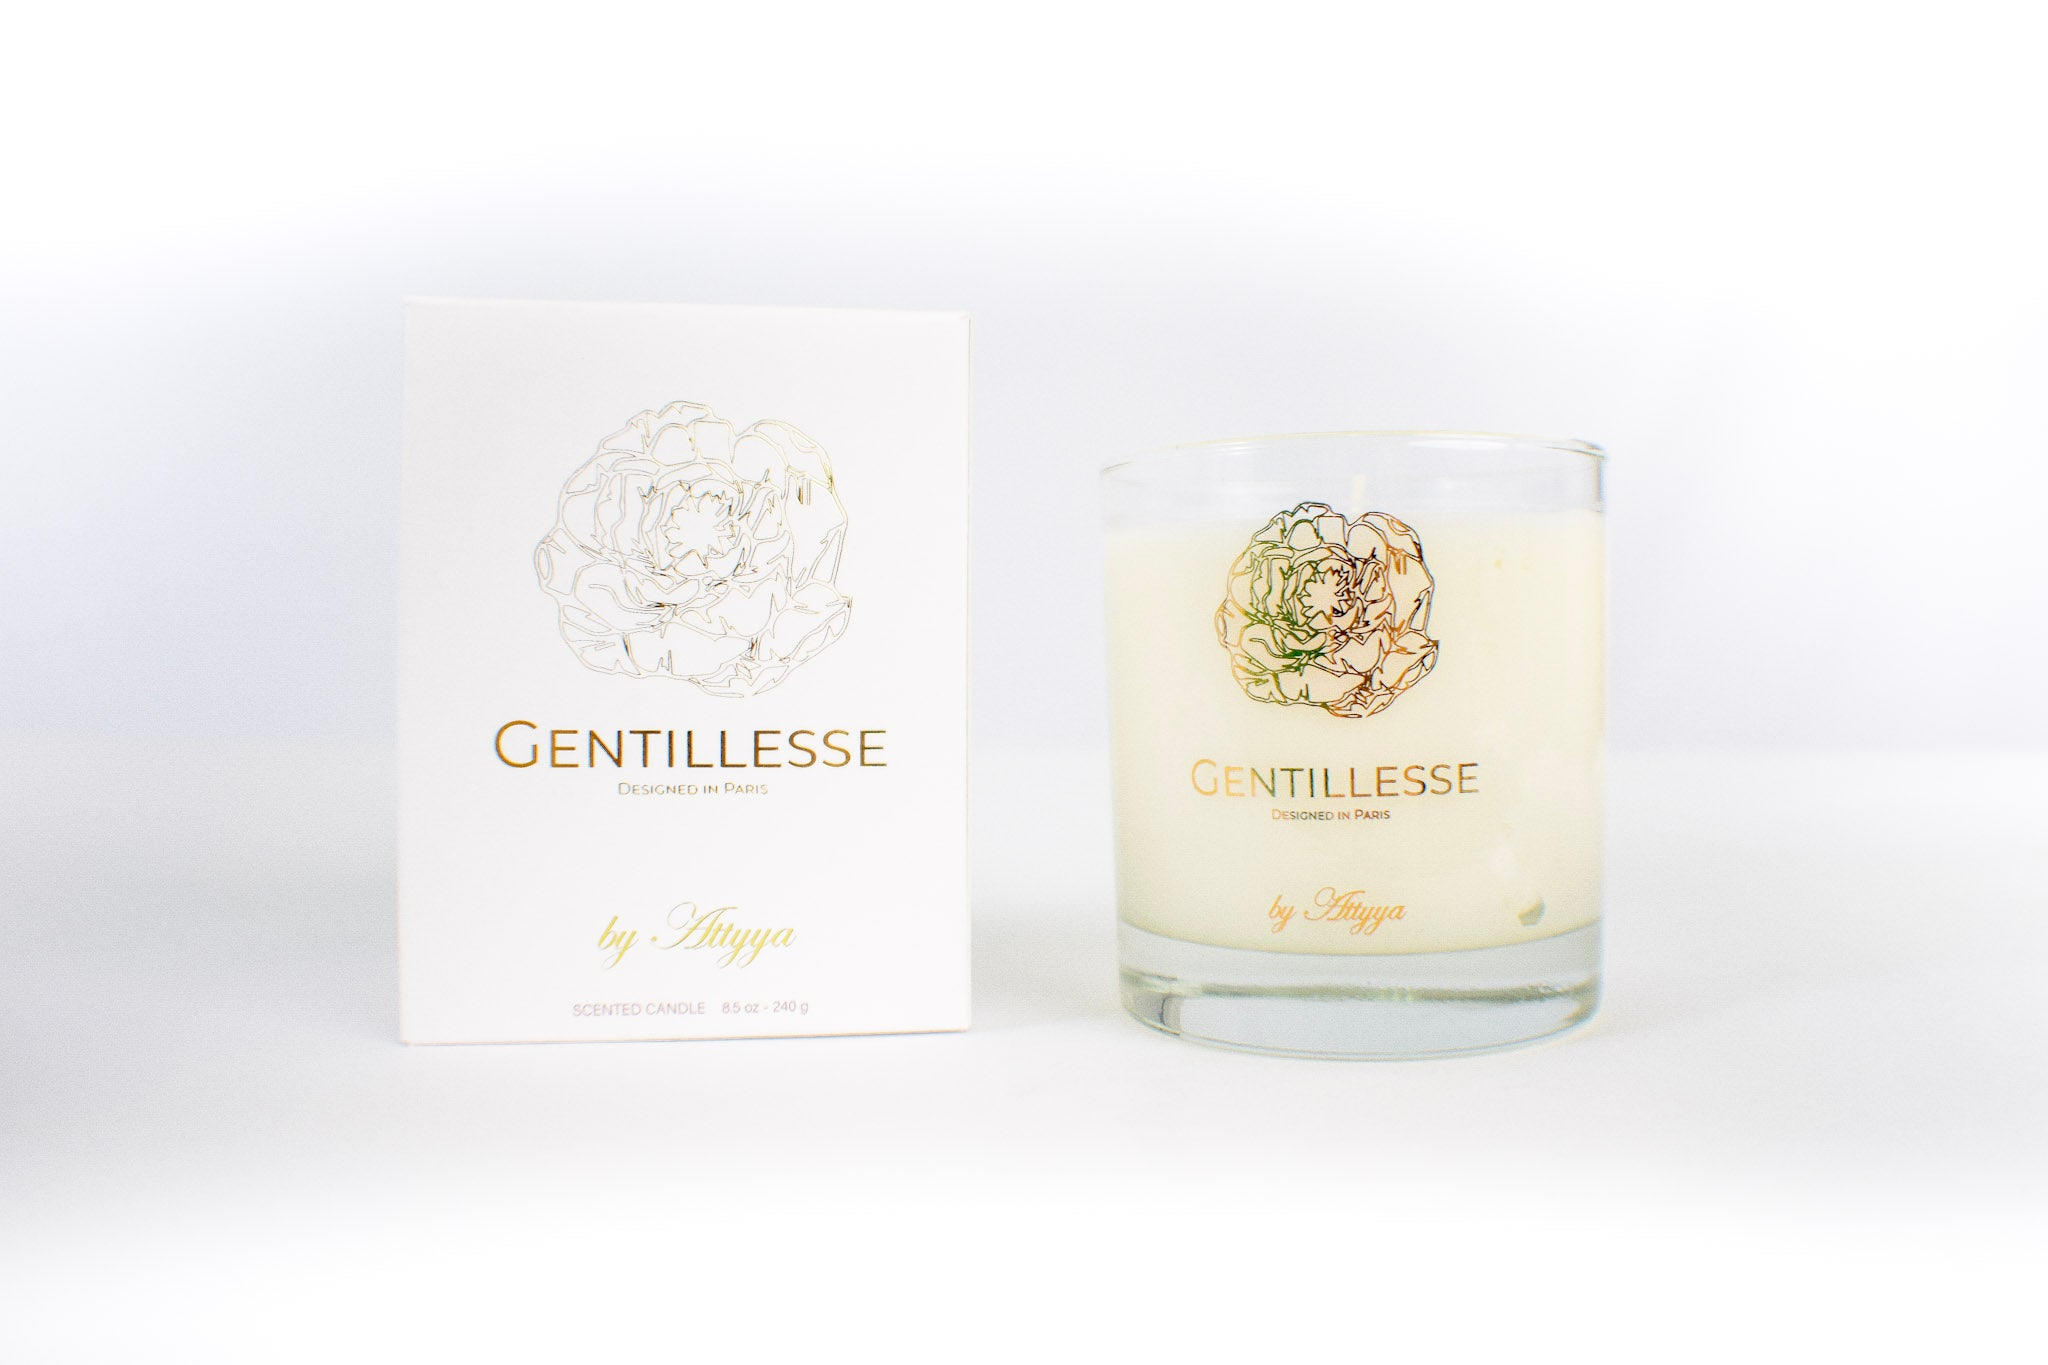 The Gentillesse Signature Candle by ATTYYA-AVAILABLE NOW